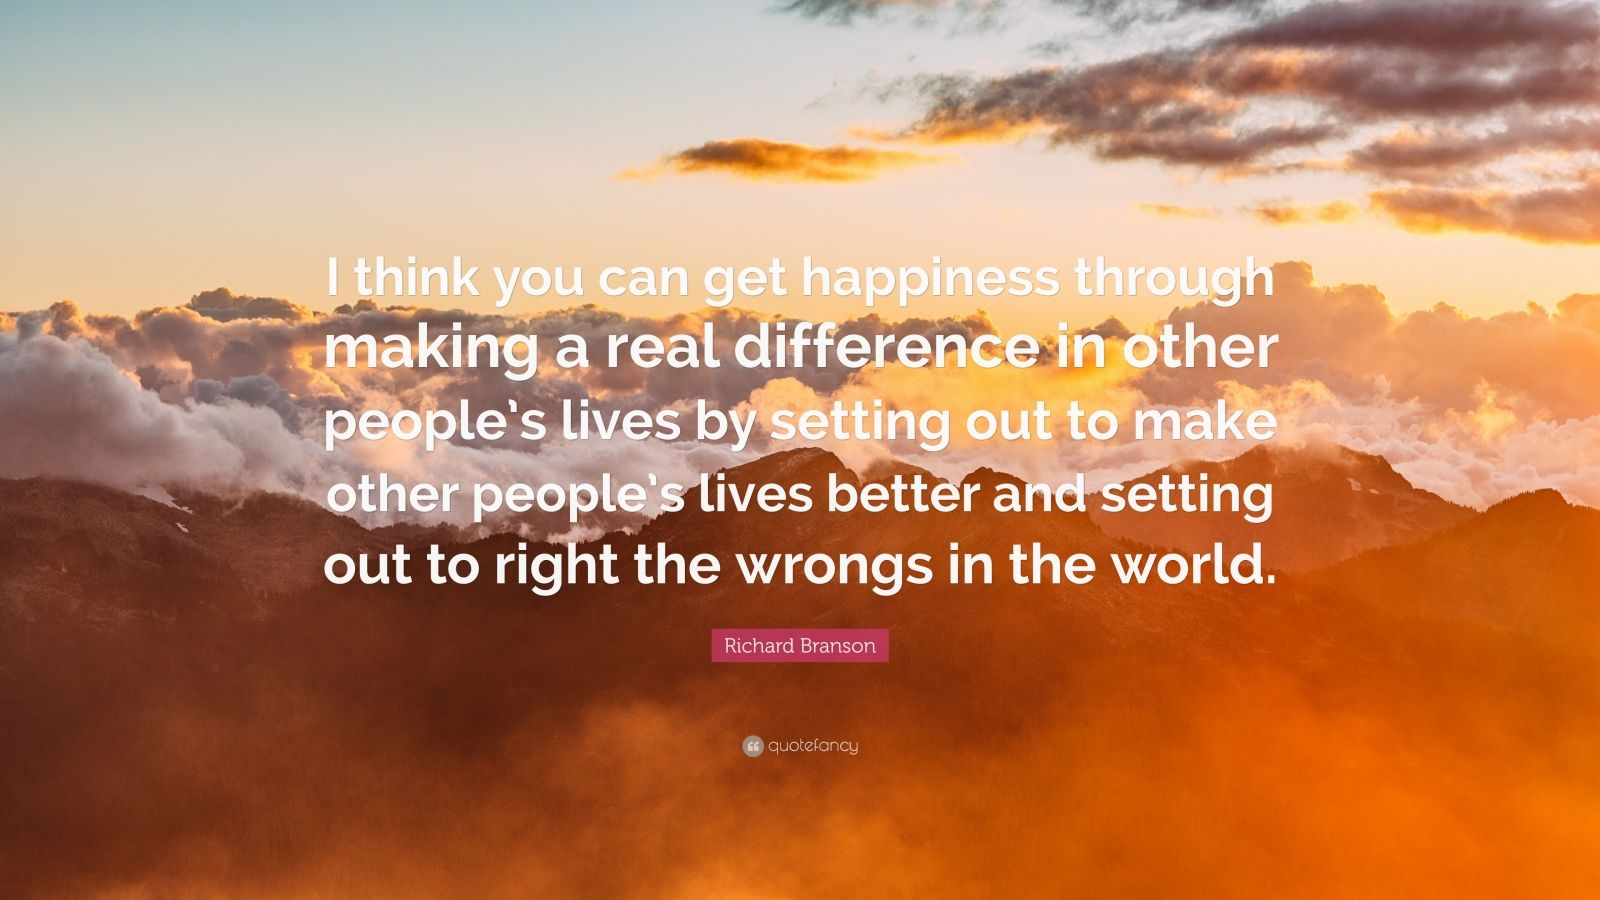 """Richard Branson Quote: """"I think you can get happiness through making a real difference in other people's lives by setting out to make other people's lives better and setting out to right the wrongs in the world."""""""